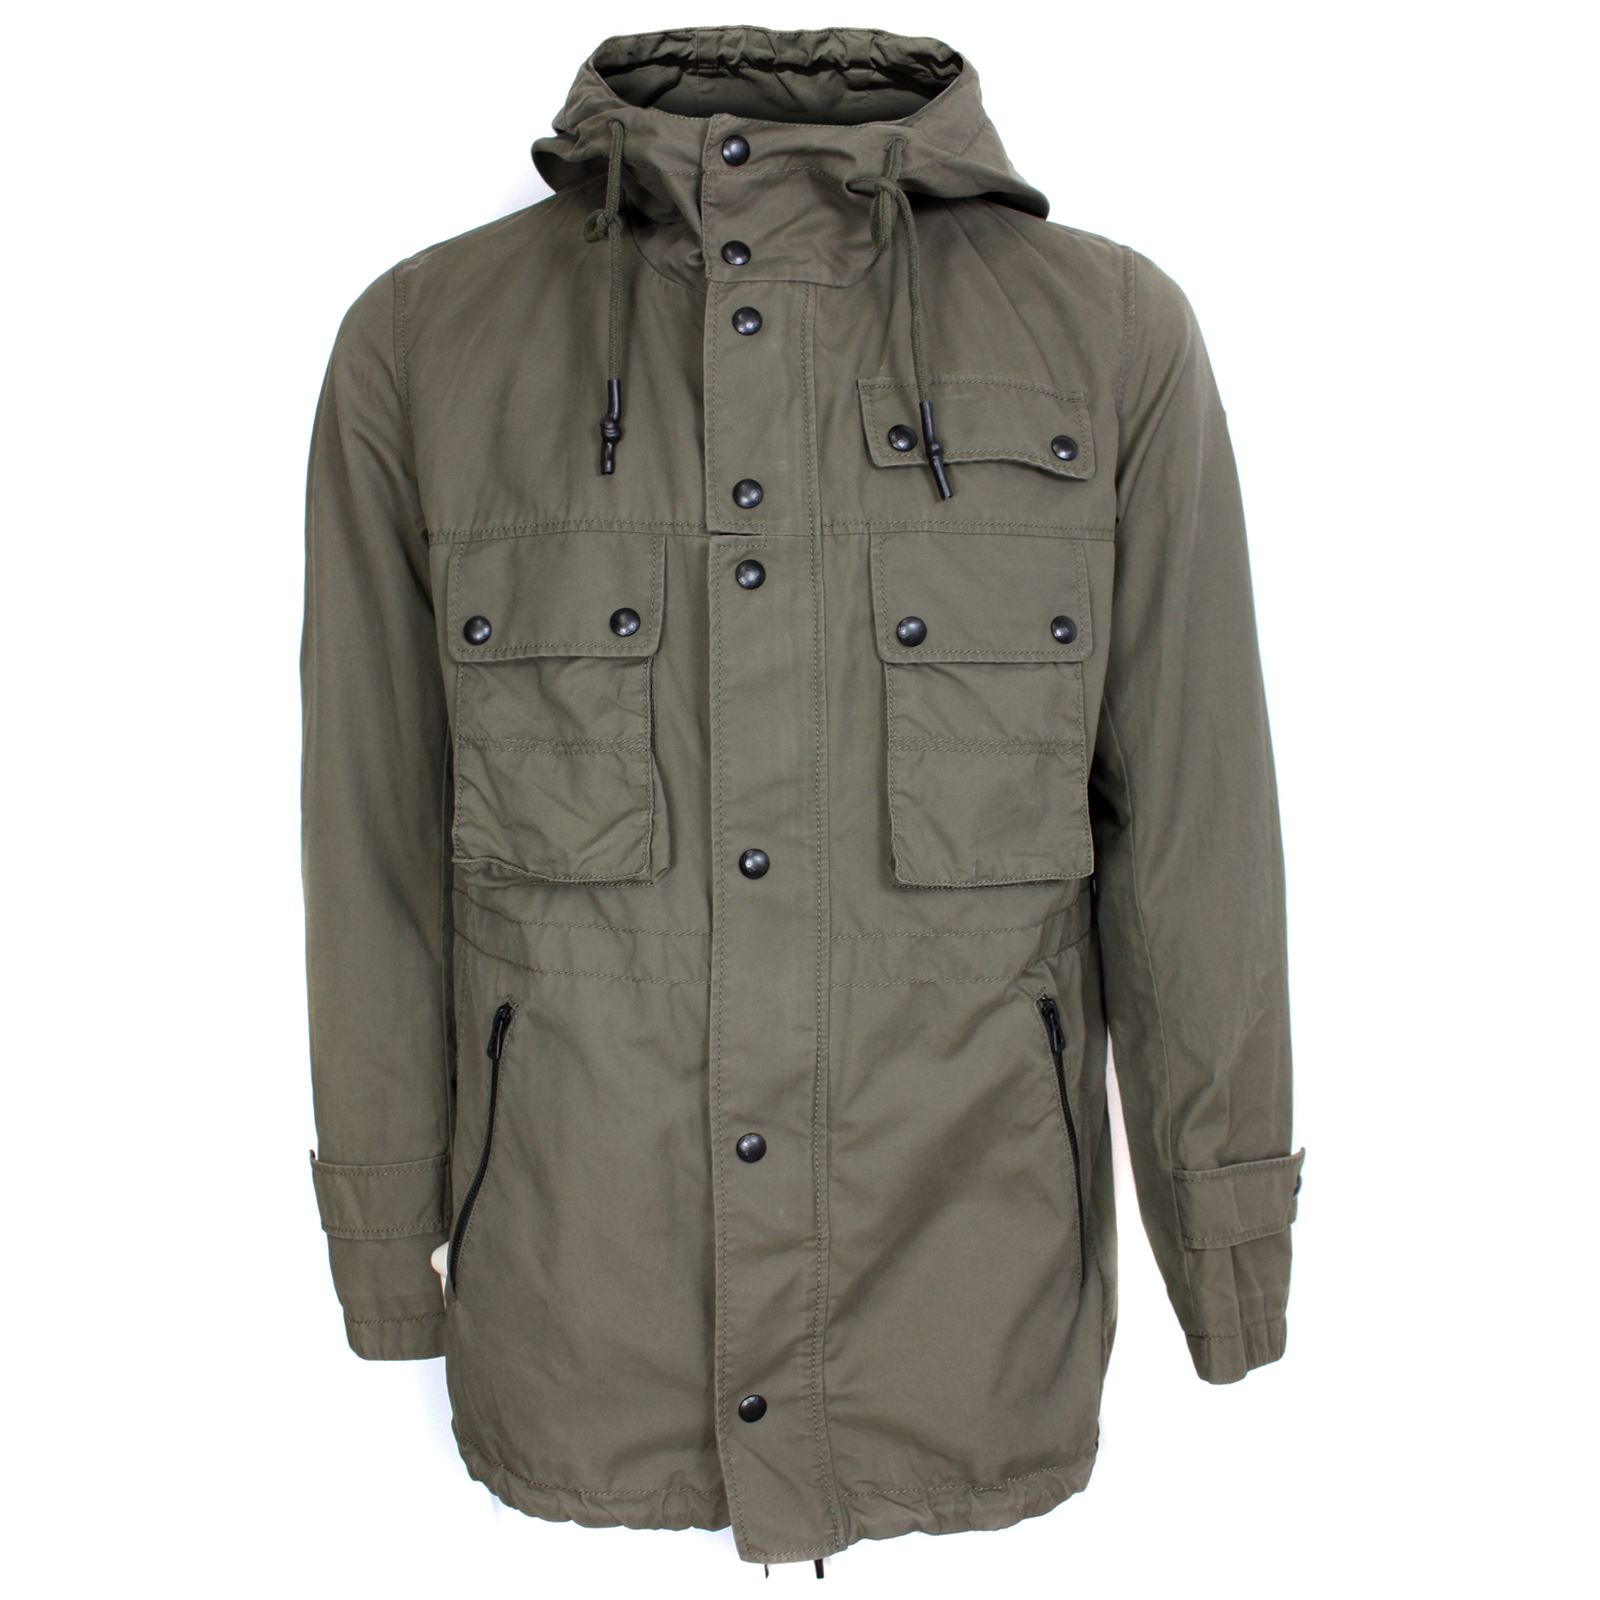 hugo boss coat orcules mens green parka jacket ebay. Black Bedroom Furniture Sets. Home Design Ideas